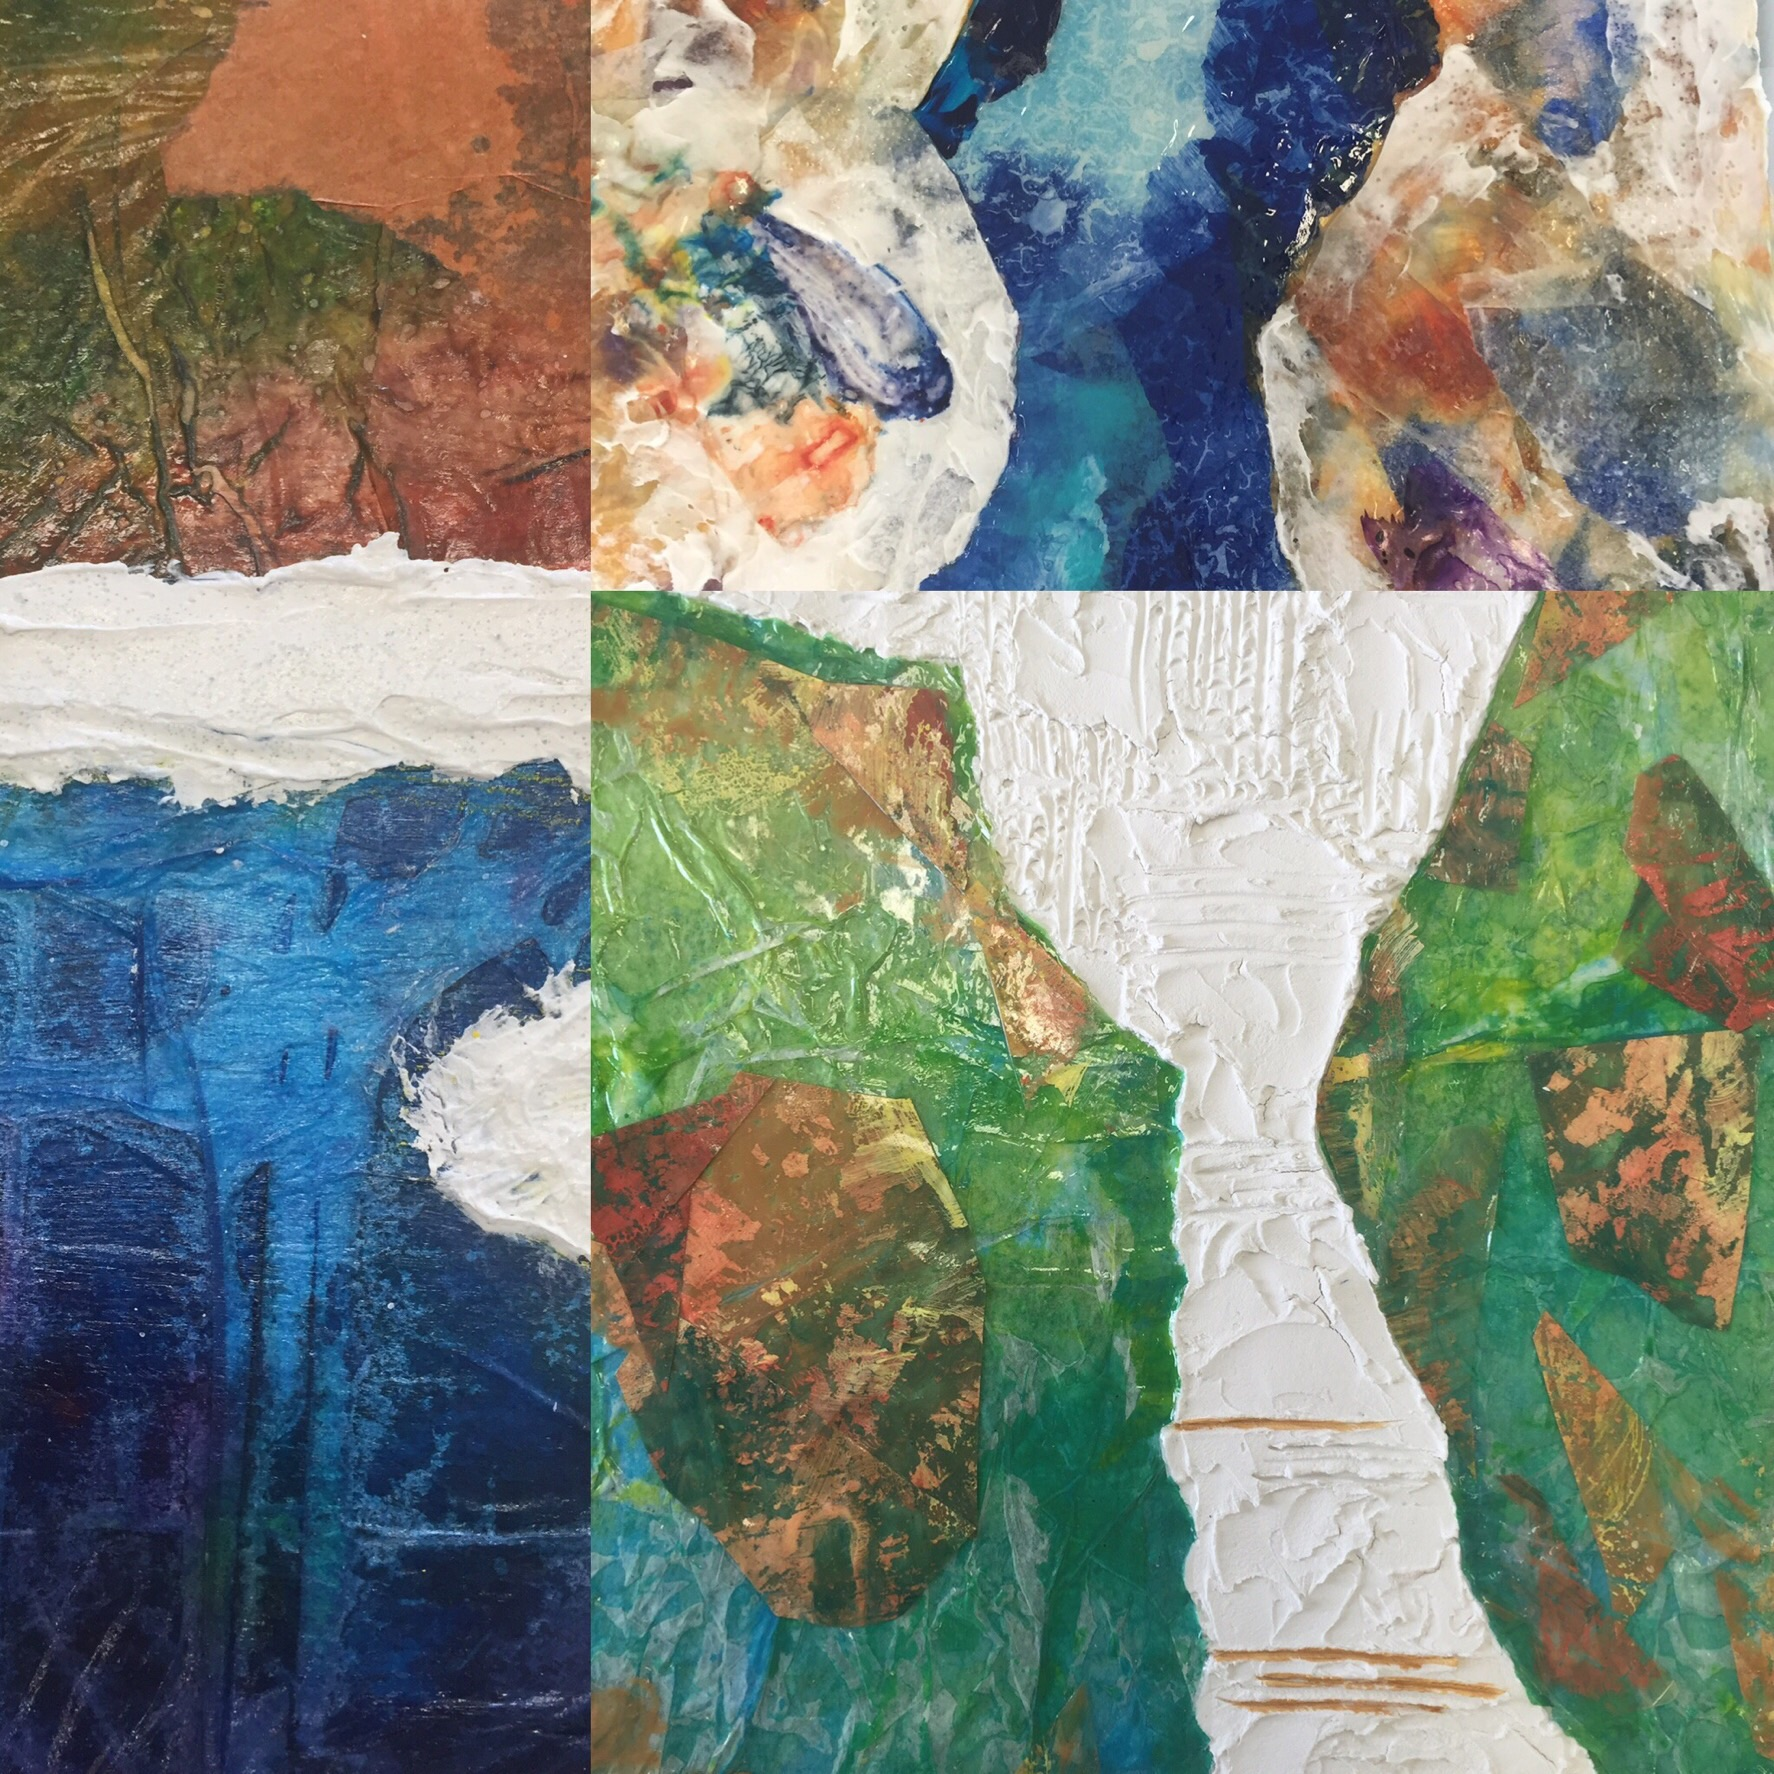 Student works in progress. Made with acrylic pastes, mediums, papers and acrylic skins.